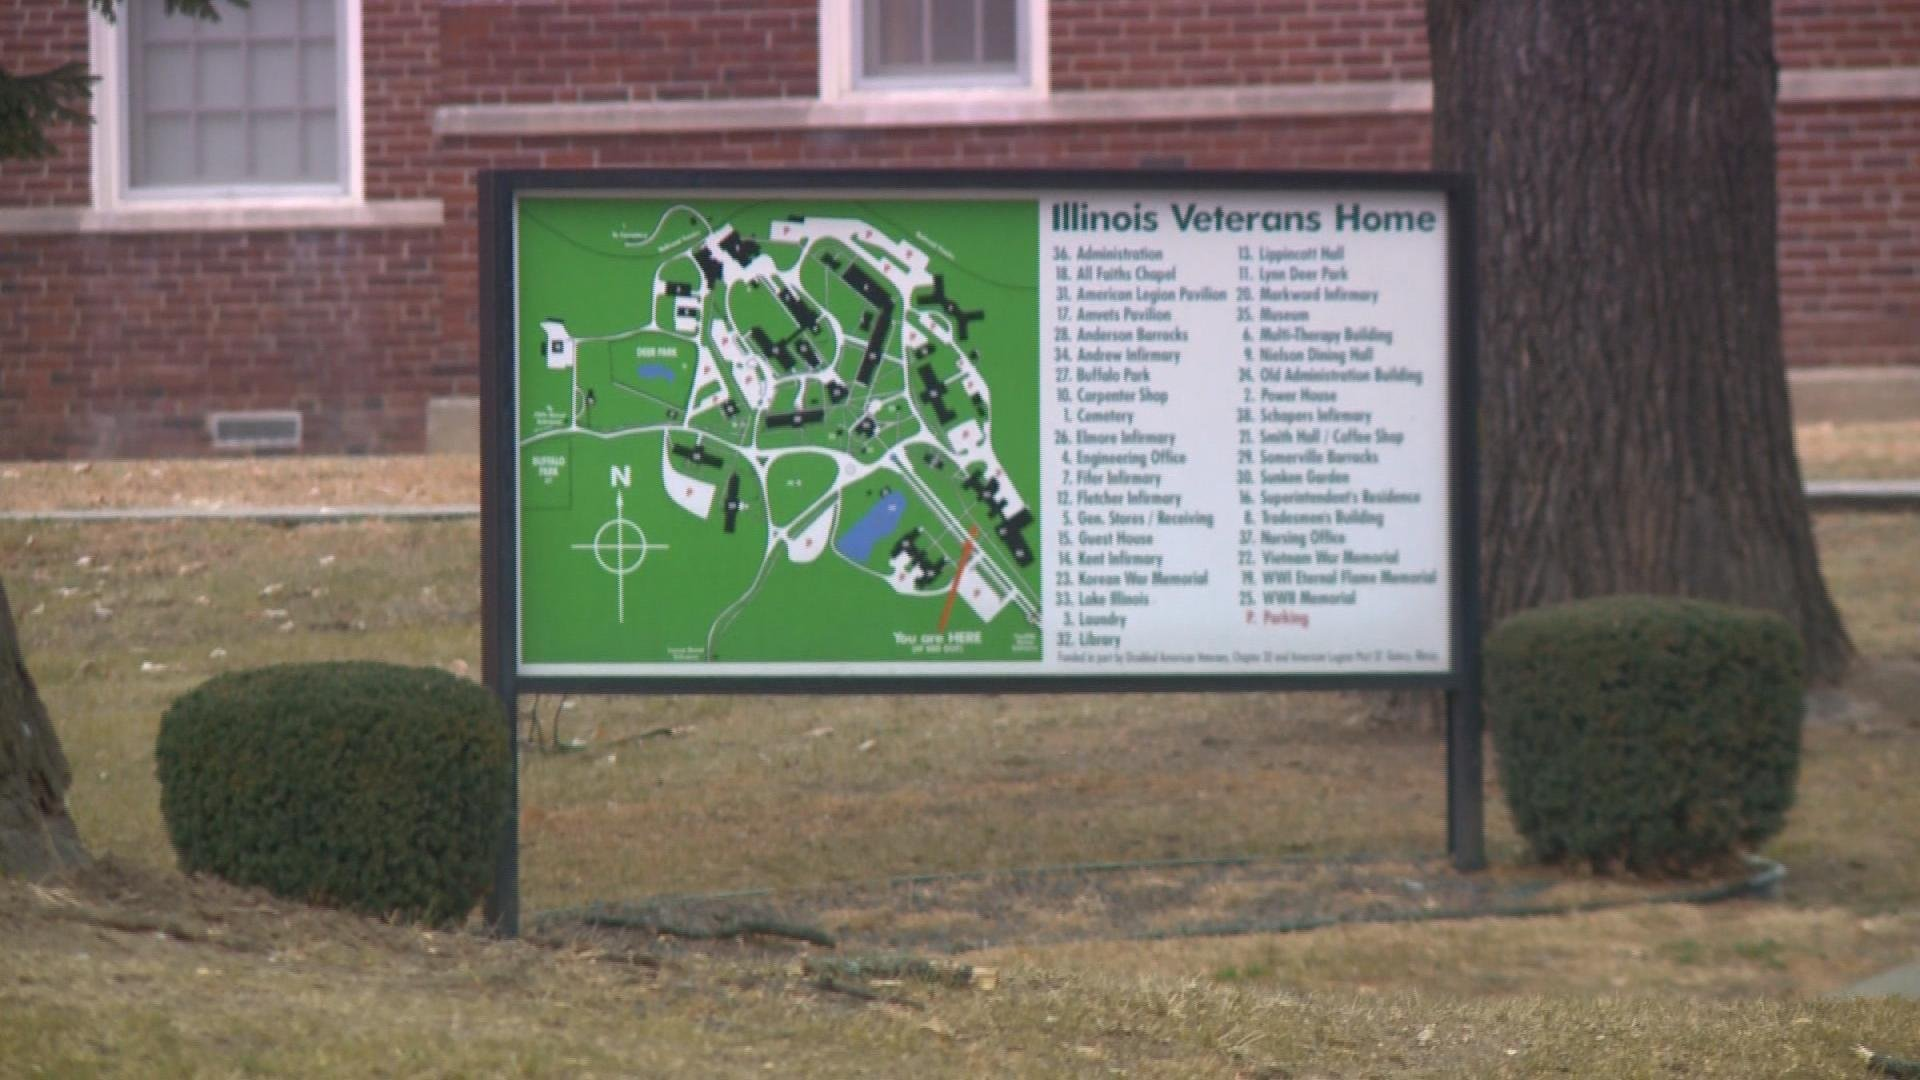 A map showing the grounds of the Illinois Veterans' Home in Quincy.